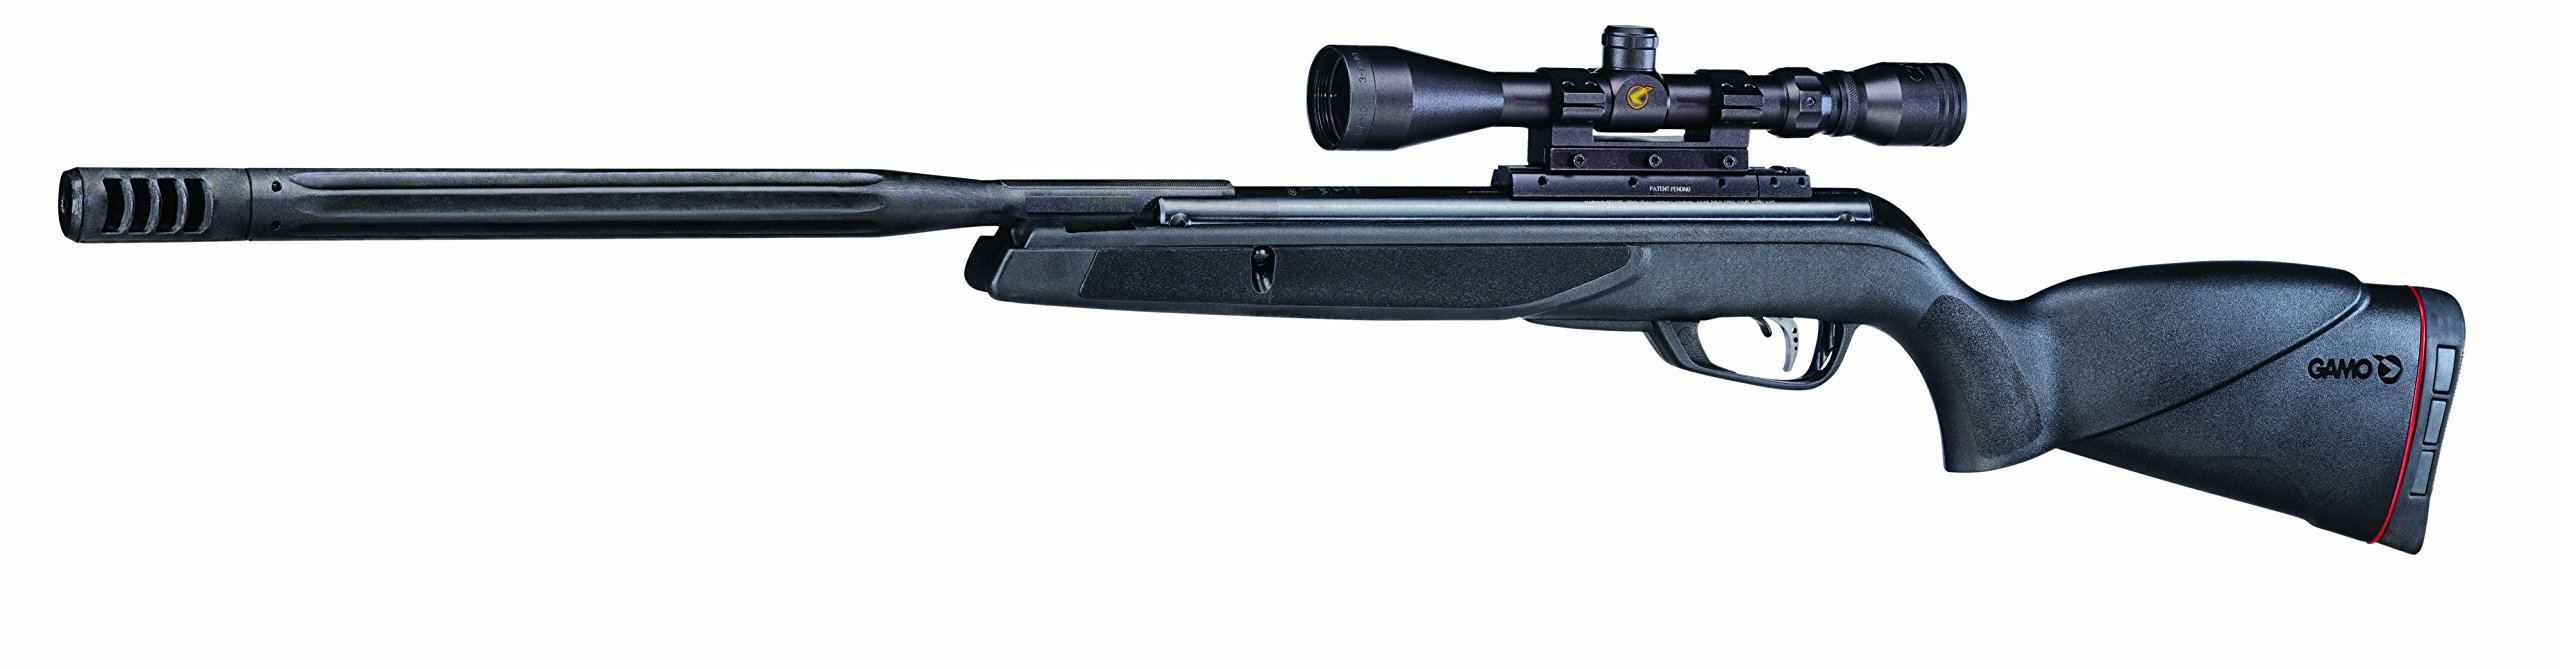 Hornet Maxxim Air Rifle .177 Cal by Gamo